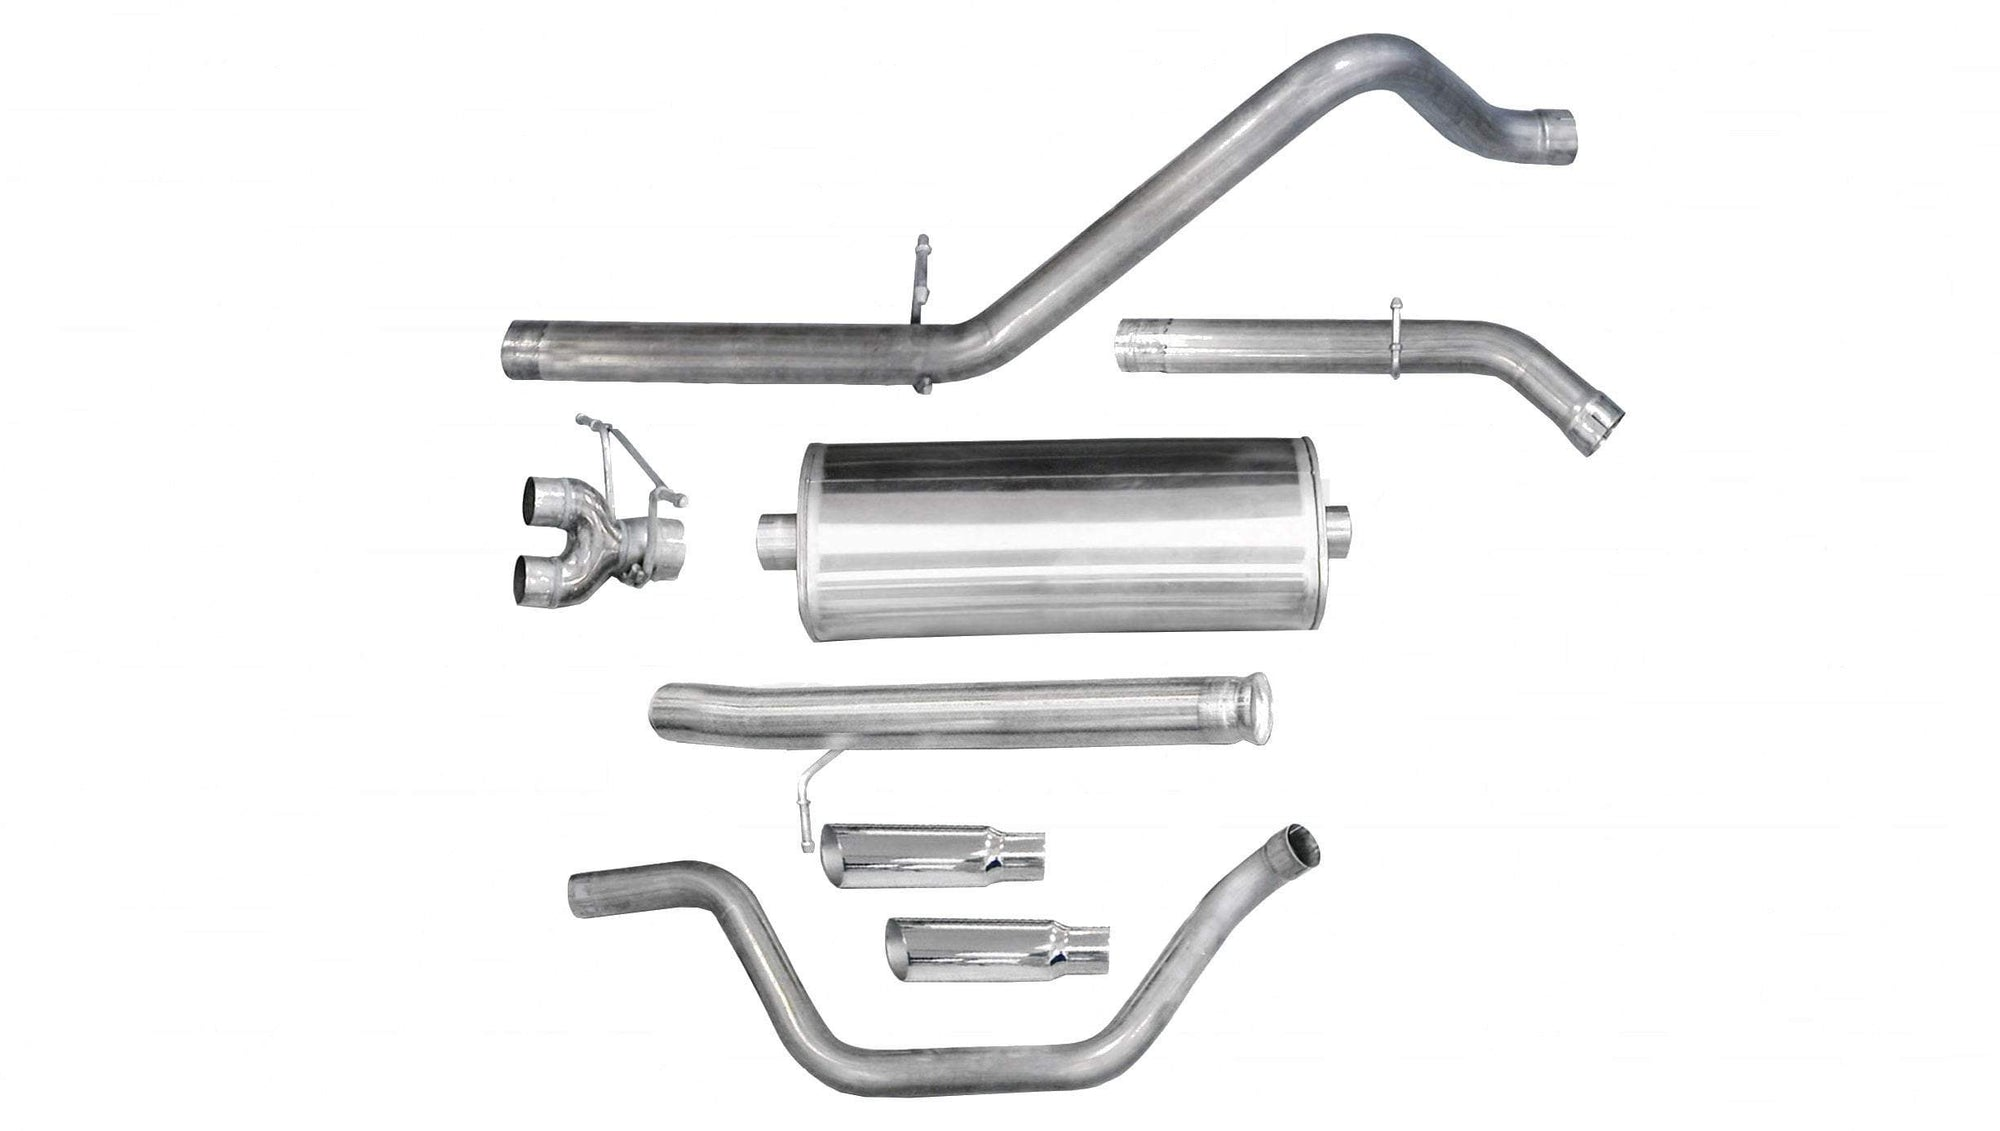 "dB Cat-Back Exhaust Polished / Sport / Single Side - Single 4in 3.0"" Dual Rear Exit Cat-Back Exhaust System with 4.0"" Tips (24921) Sport Sound Level"